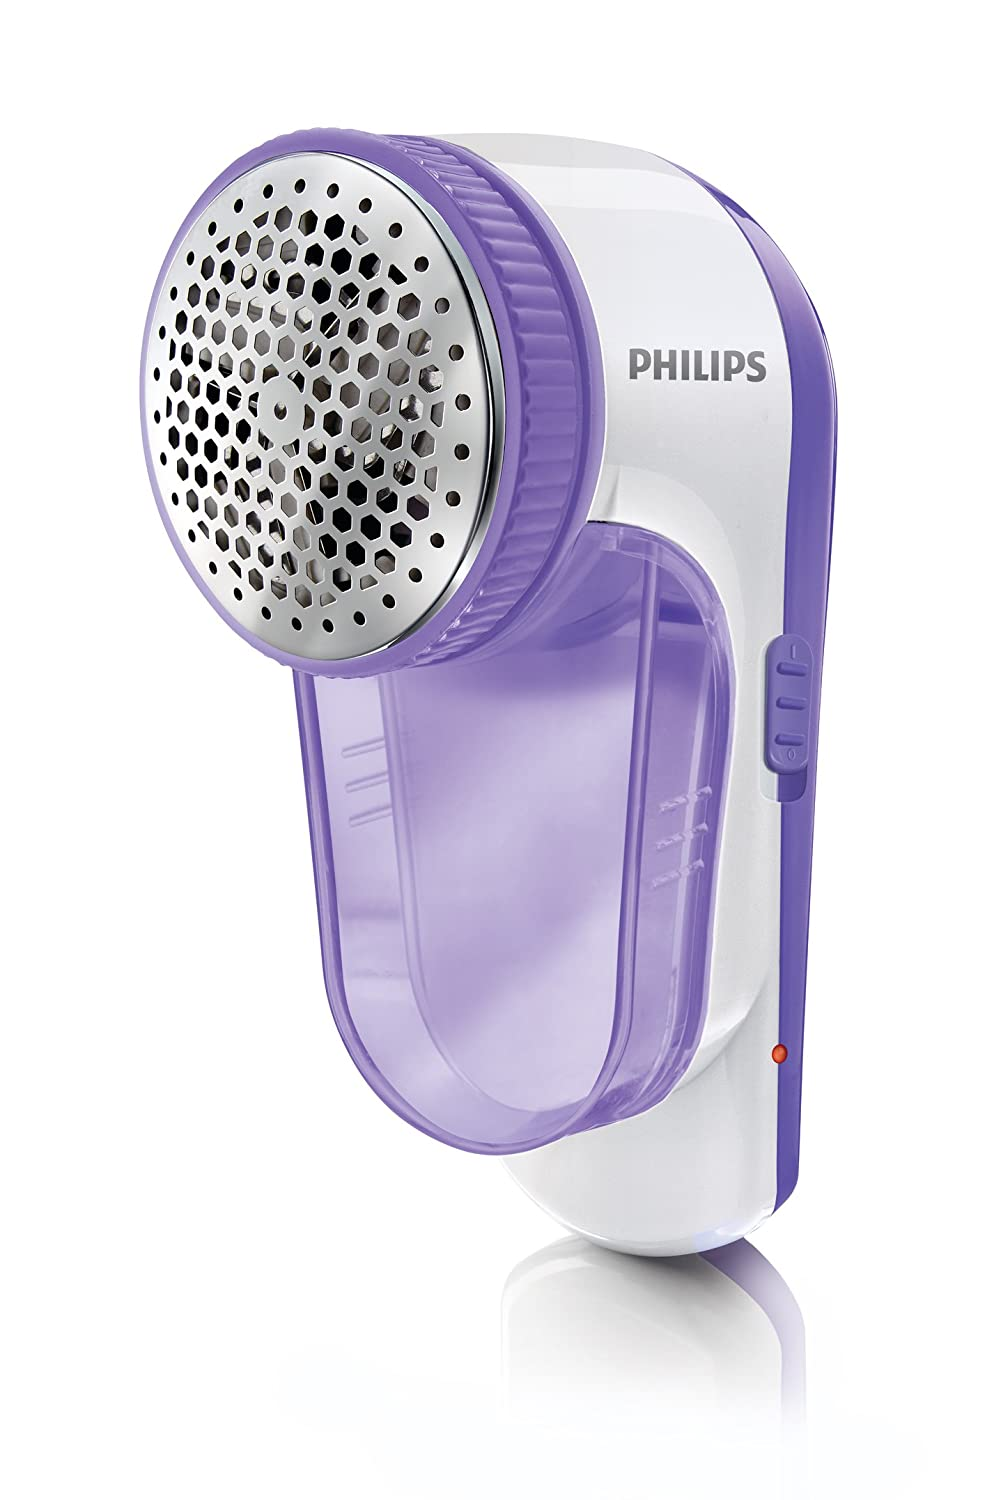 philips gc027 00 rasoir anti bouloche lectrique batterie rechargeable via c b ebay. Black Bedroom Furniture Sets. Home Design Ideas